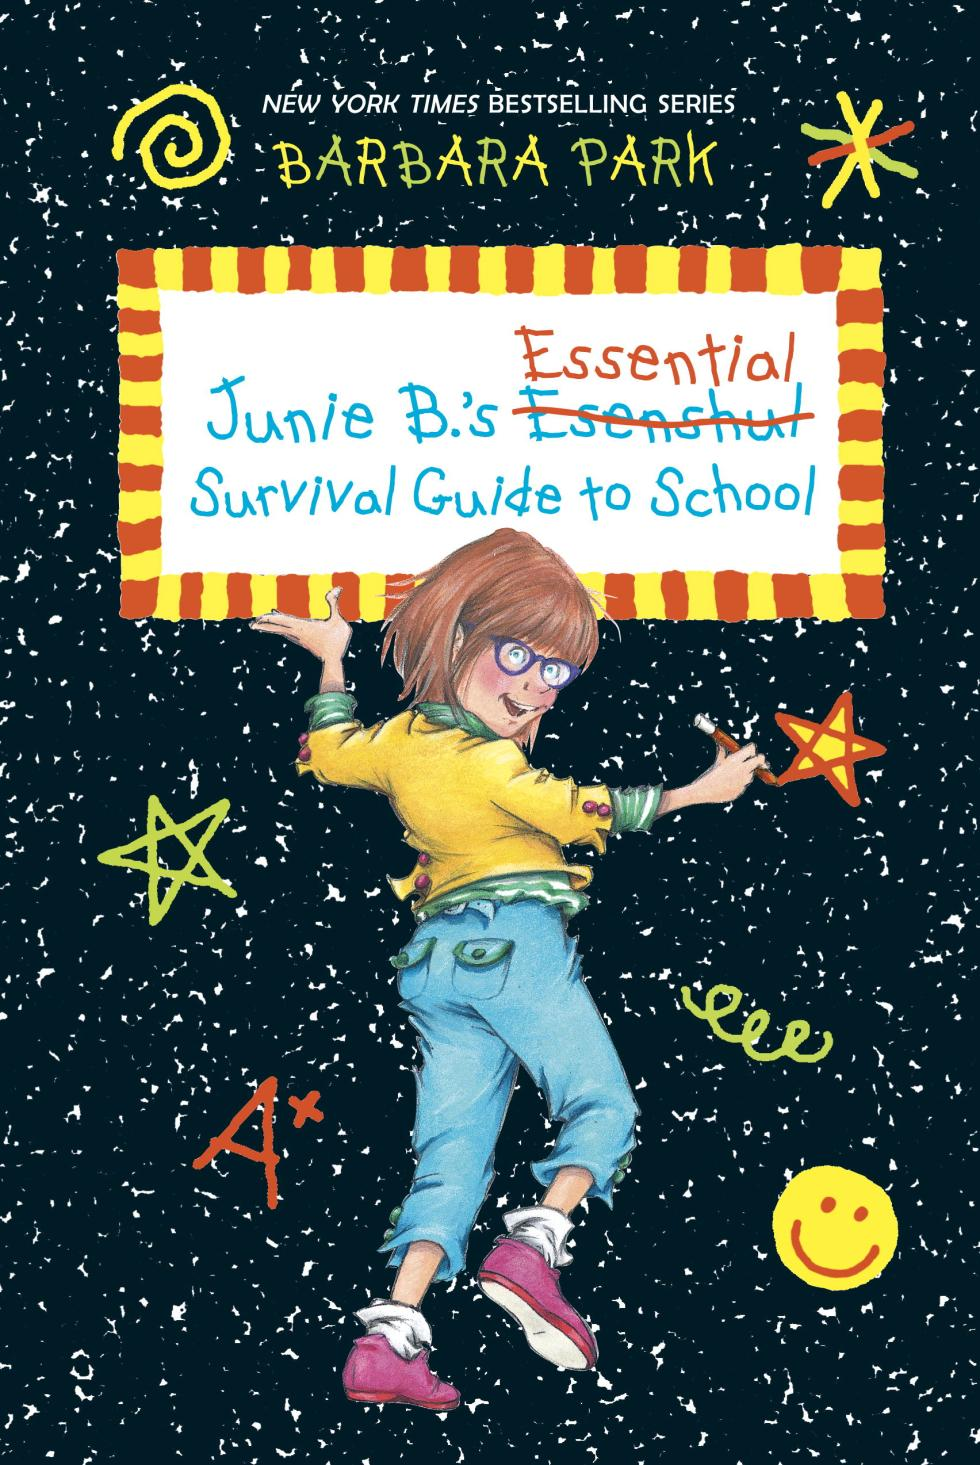 Junie B.'s Essential Survival Guide To School (Family) May 2016